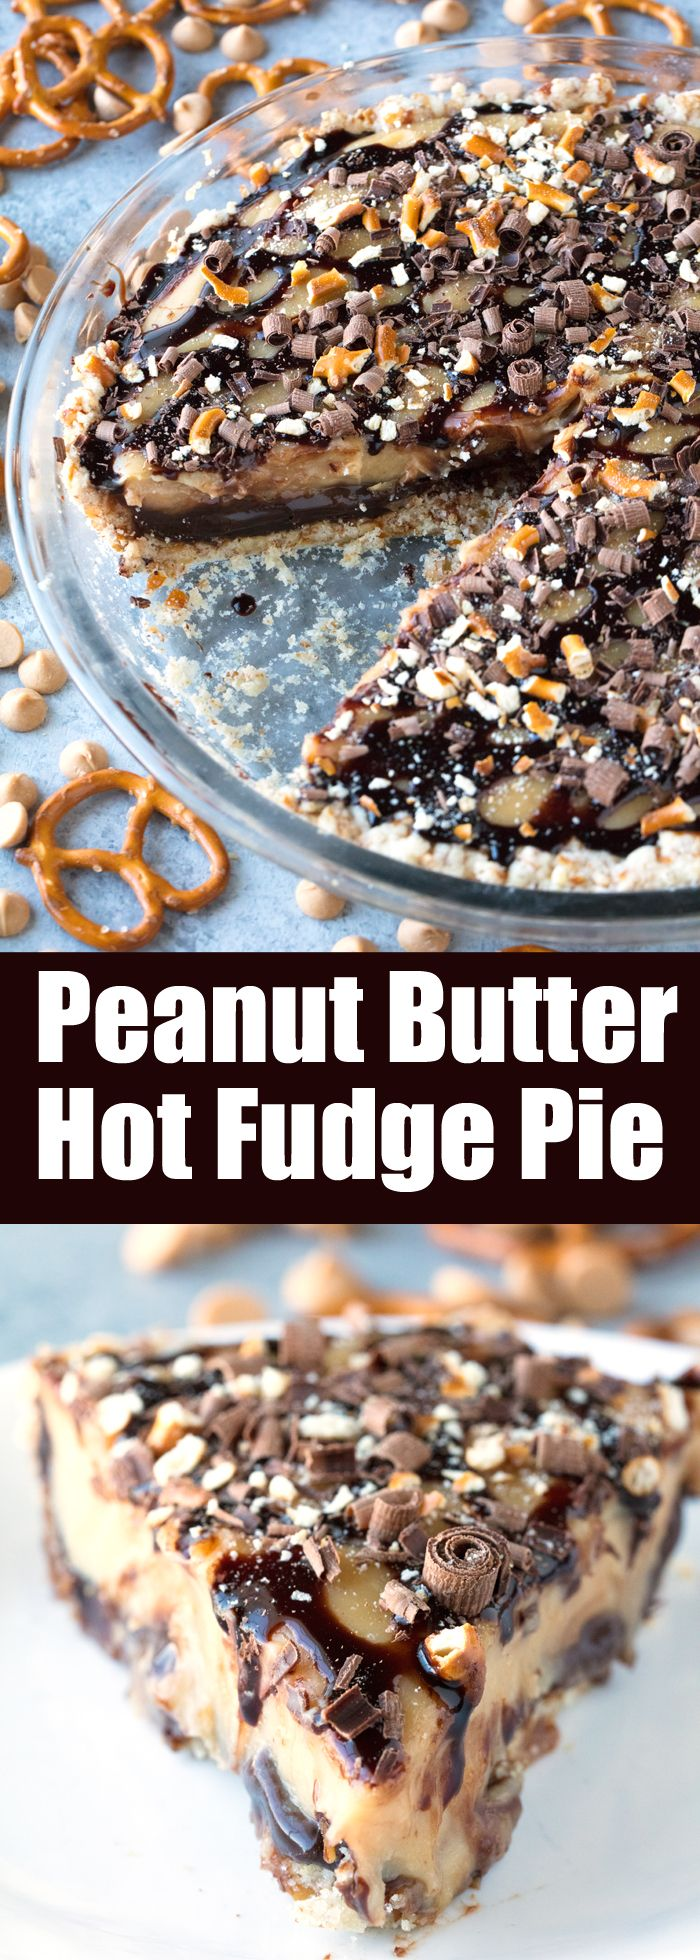 Get ready for a pie that will change your life! Peanut Butter Hot Fudge Pie with Pretzel Crust is sure to be a family favorite!